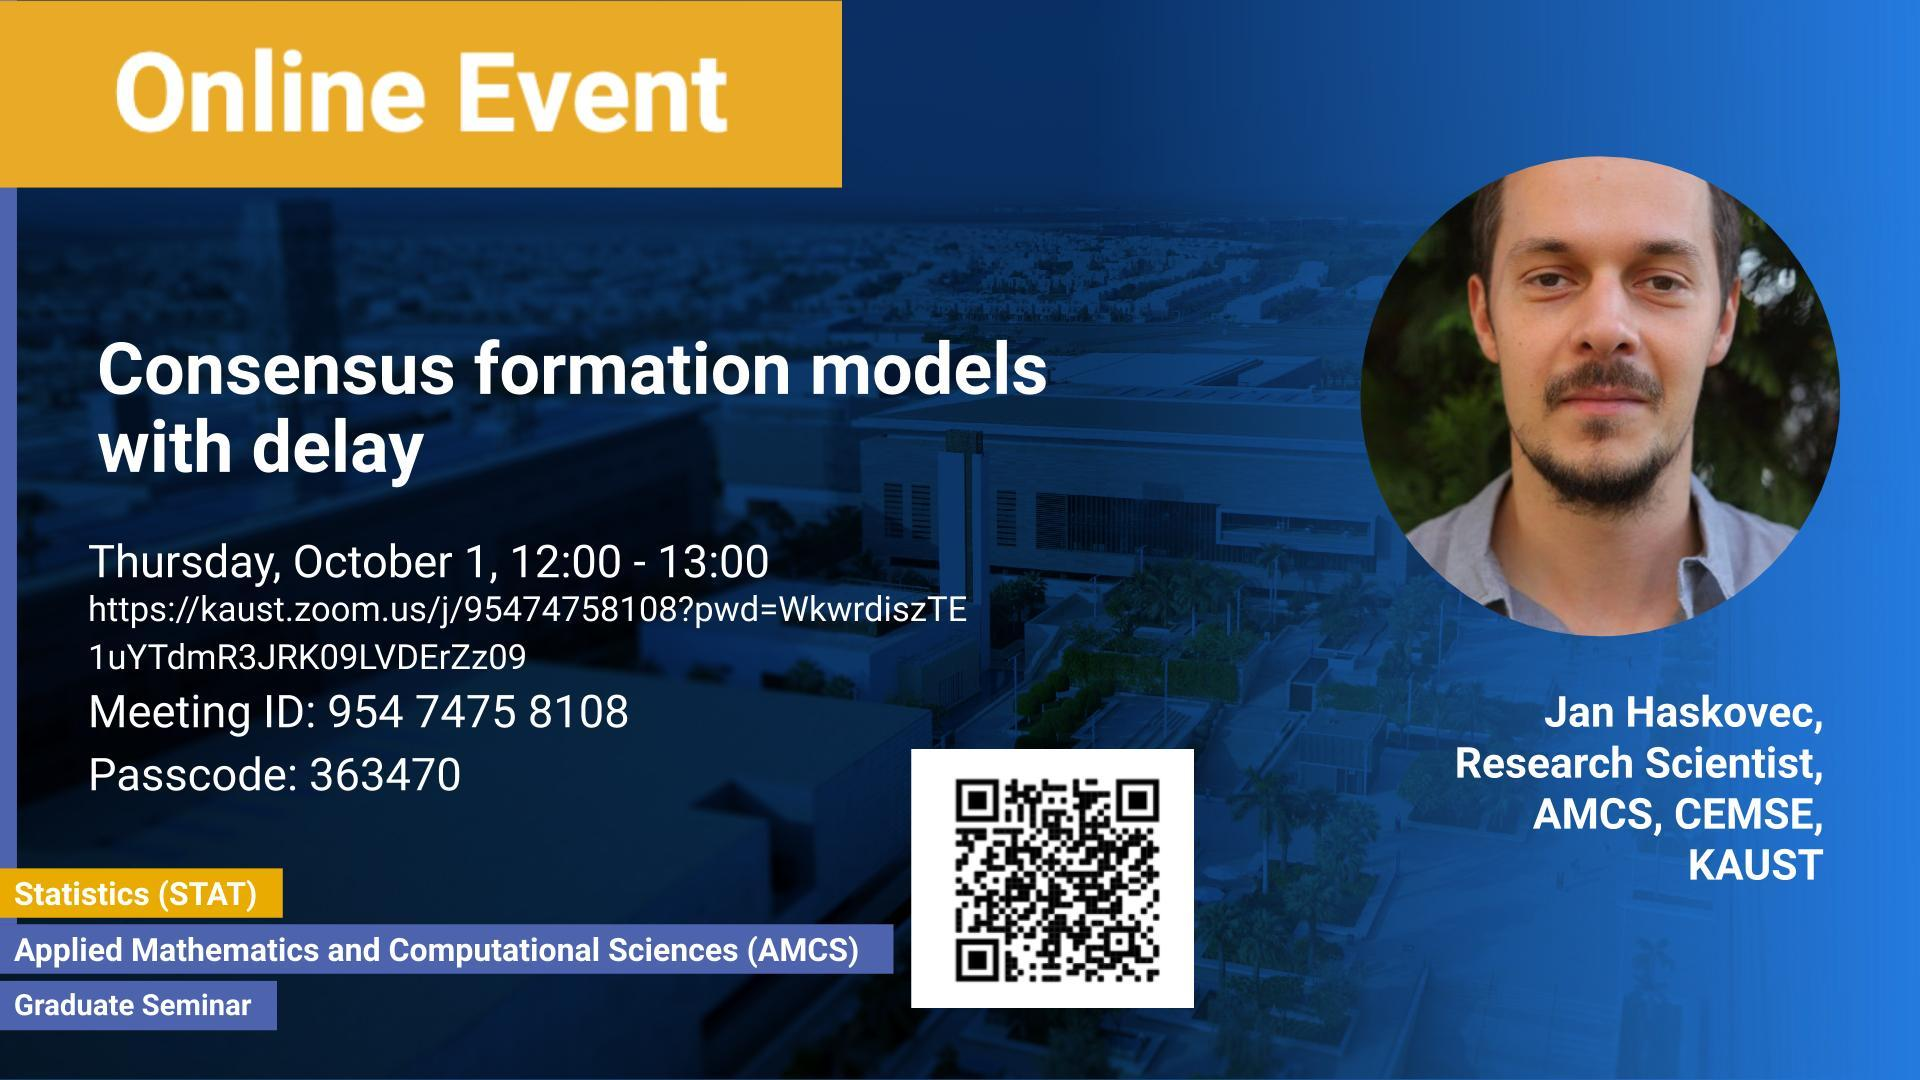 KAUST-CEMSE-AMCS-STAT-Graduate-Seminar-Jan-Haskovec-Consensus formation-models-with-delay